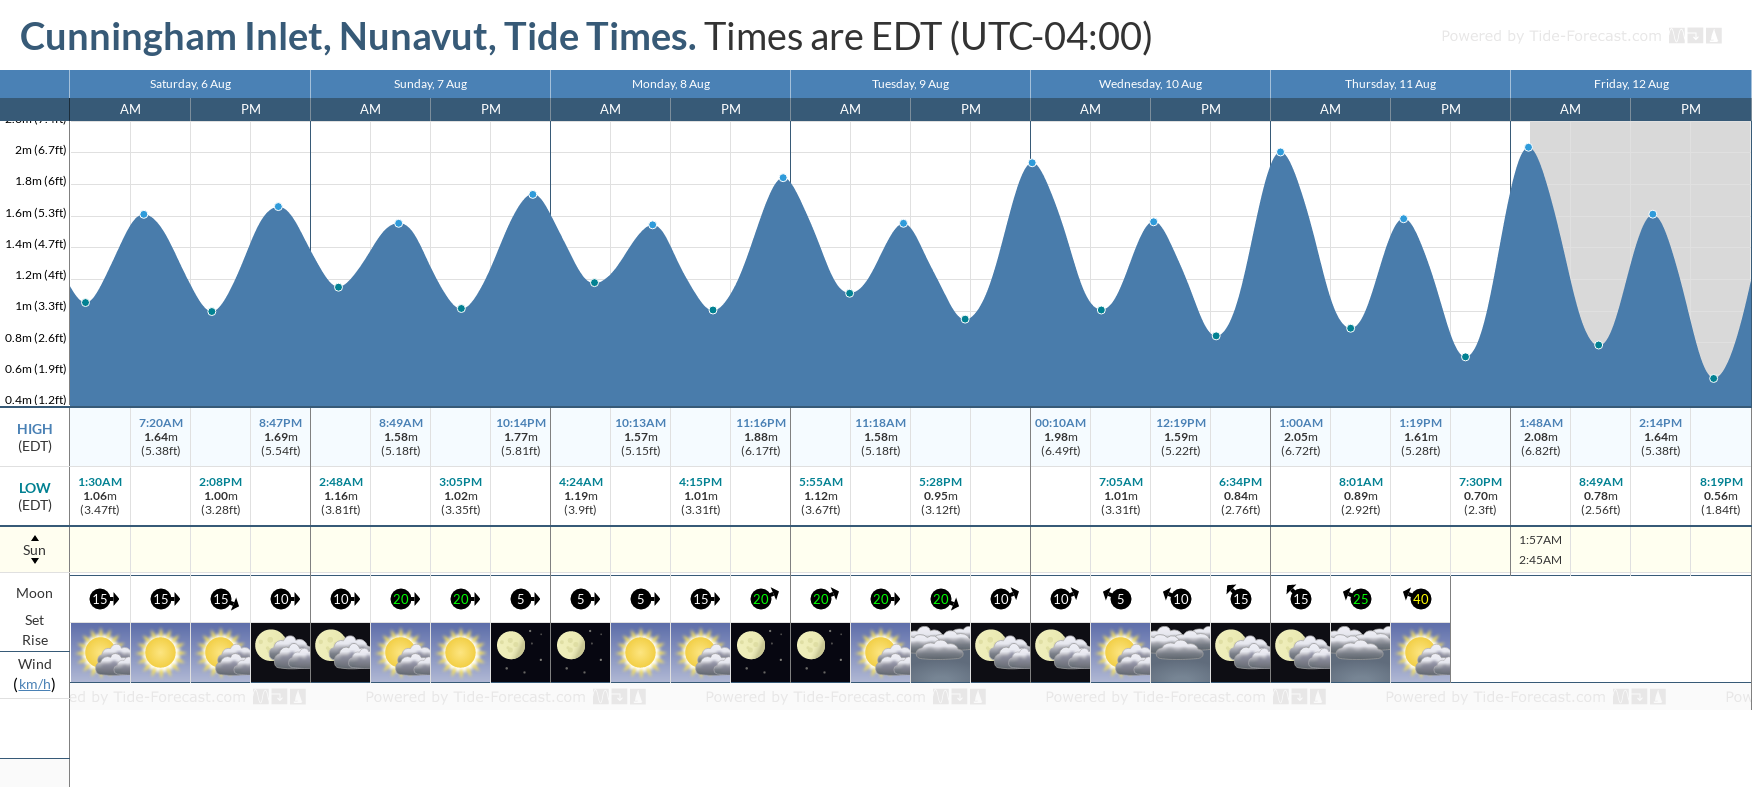 Cunningham Inlet, Nunavut Tide Chart including high and low tide tide times for the next 7 days